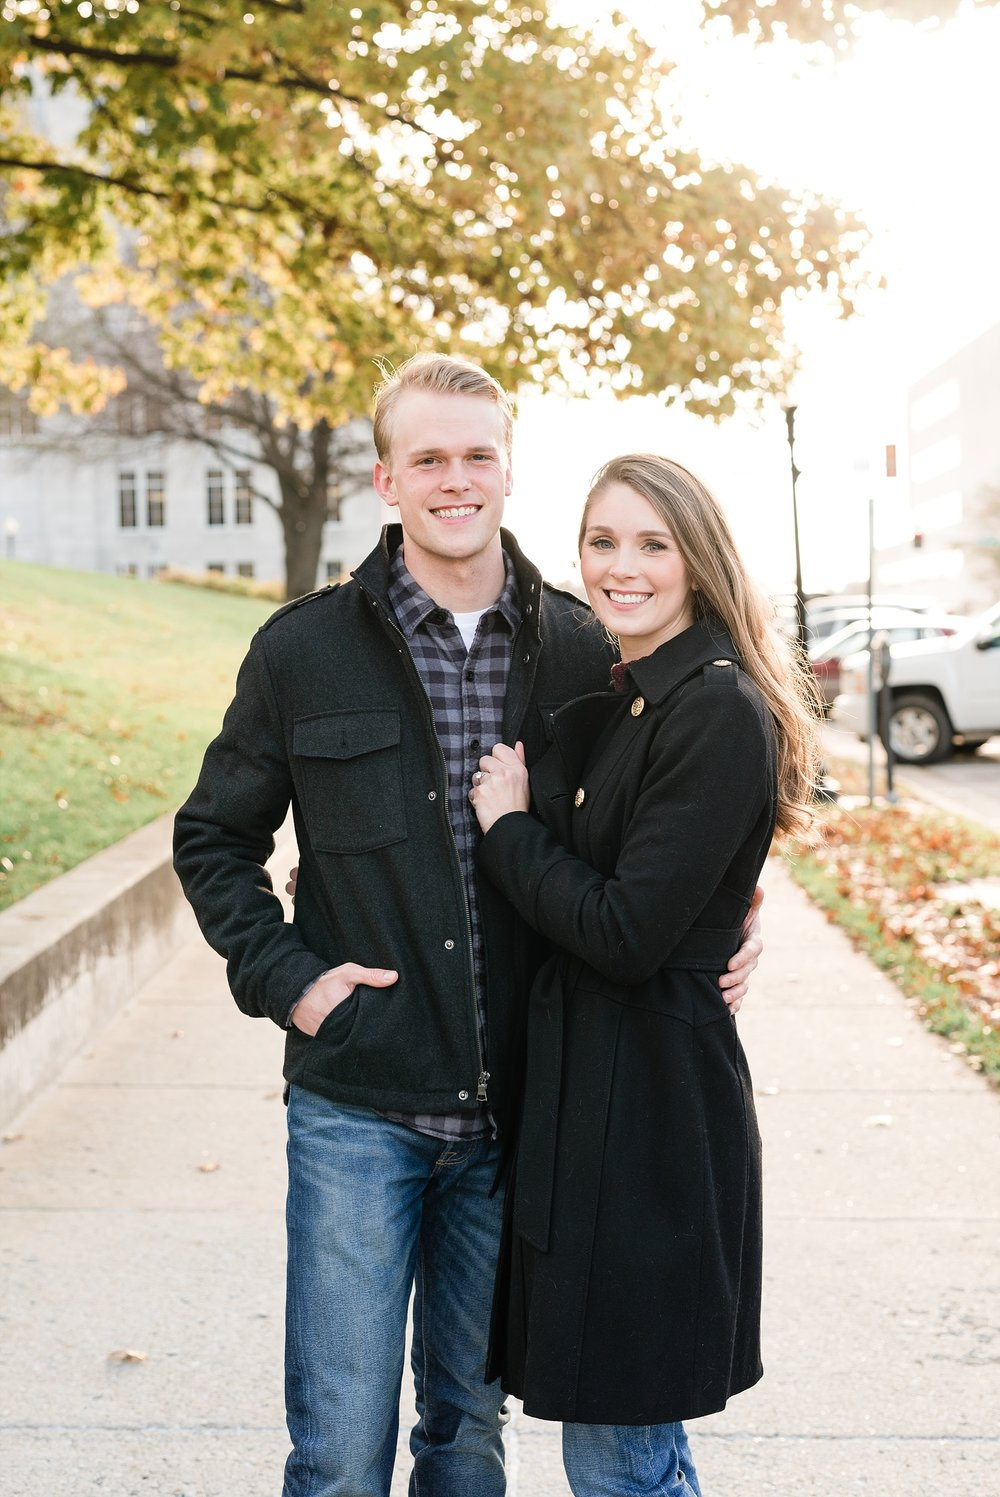 Downtown Jefferson City Engagement Session in Winter at Old Shoe Factory by Kelsi Kliethermes Photography Kansas City Missouri Wedding Photographer_0007.jpg